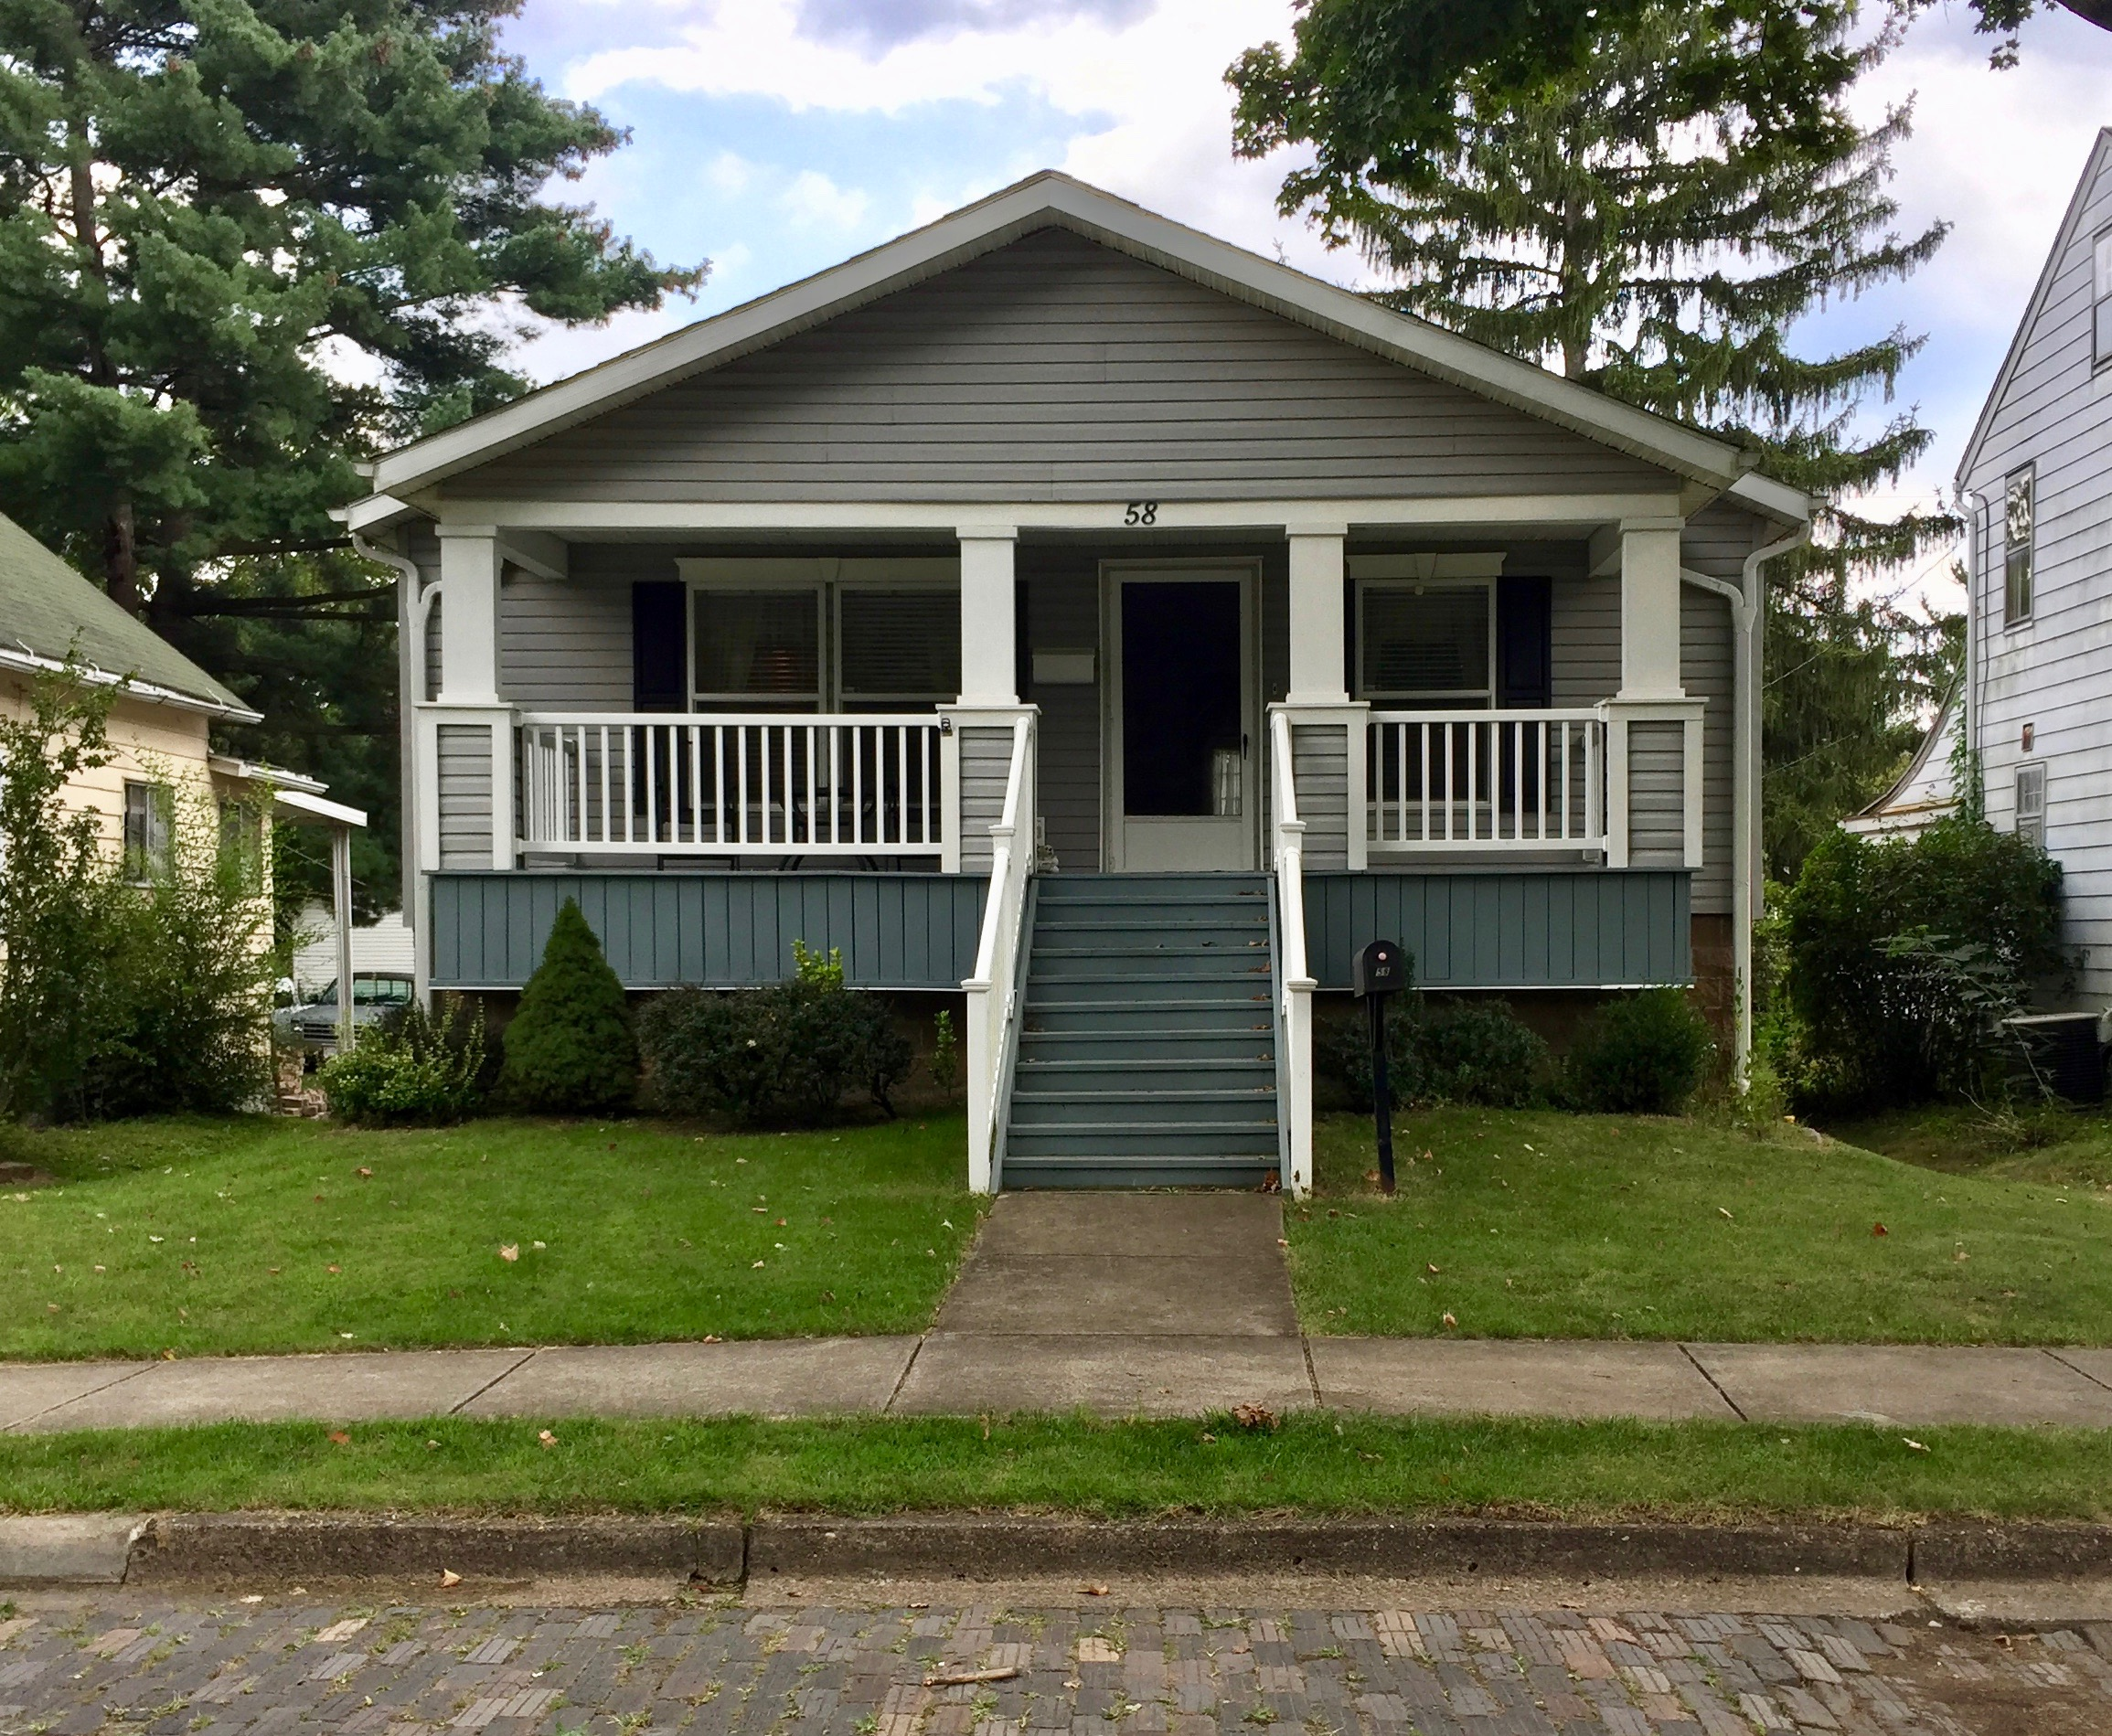 House for Rent in Athens, Ohio — Near Eastside Neighborhood